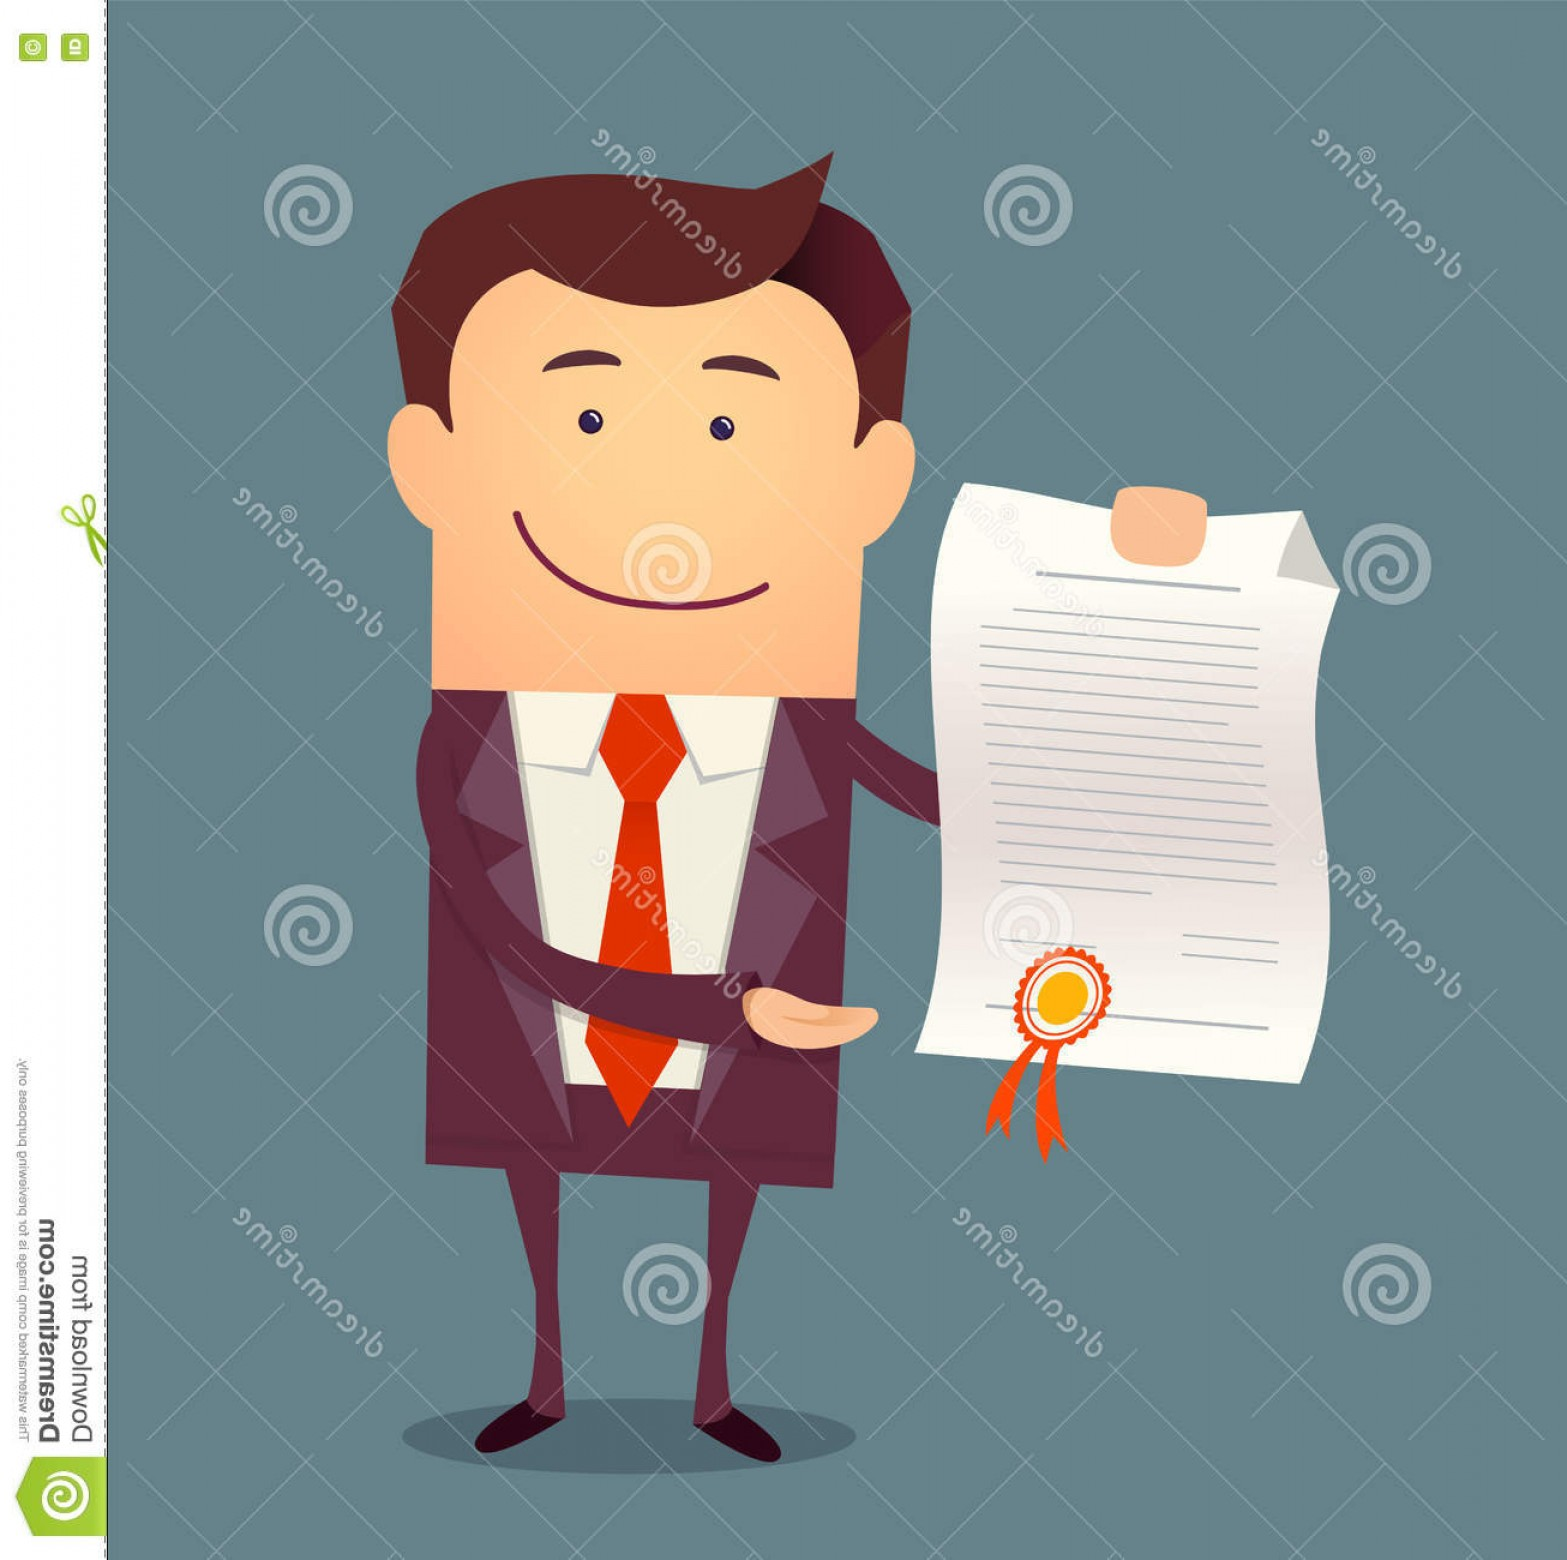 Standing Diploma Vector: Stock Illustration Vector Illustration Businessman Proudly Standing Showing Diploma Flat Style Image